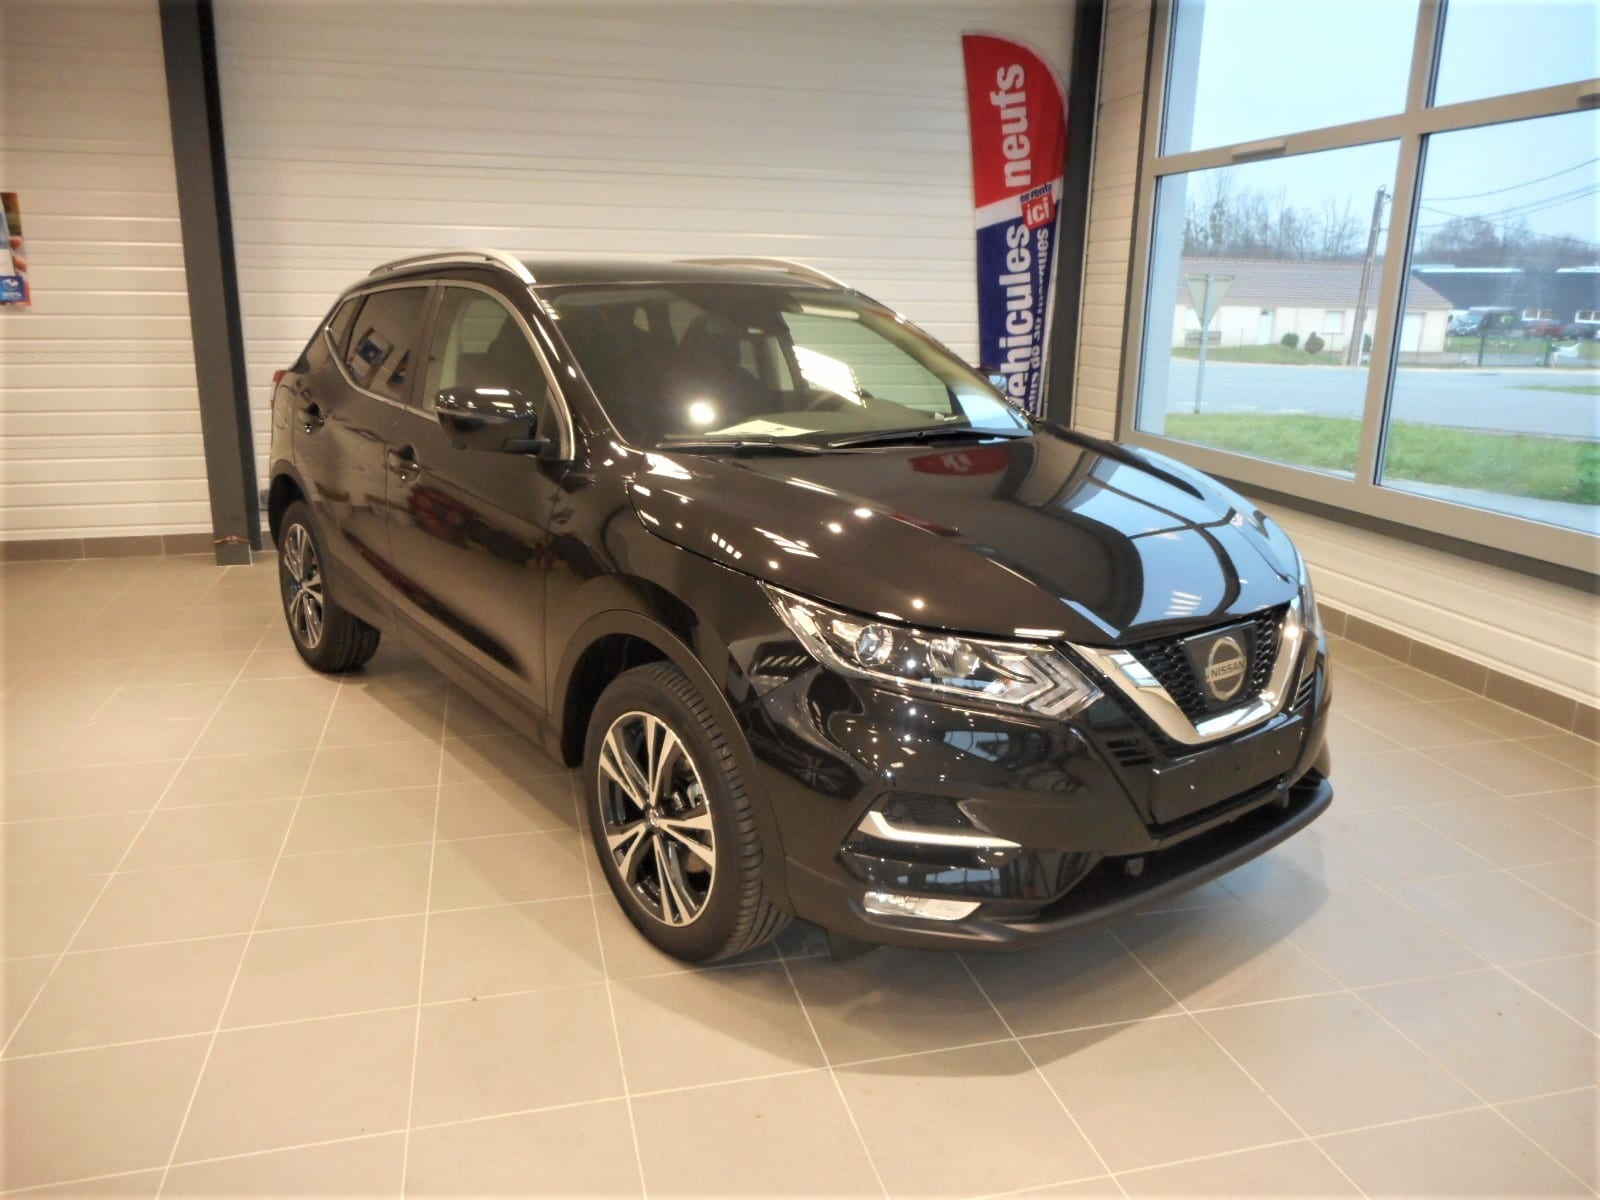 NISSAN QASHQAI 1.5 DCI 110 N CONNECTA PACK DESIGN - Image 1